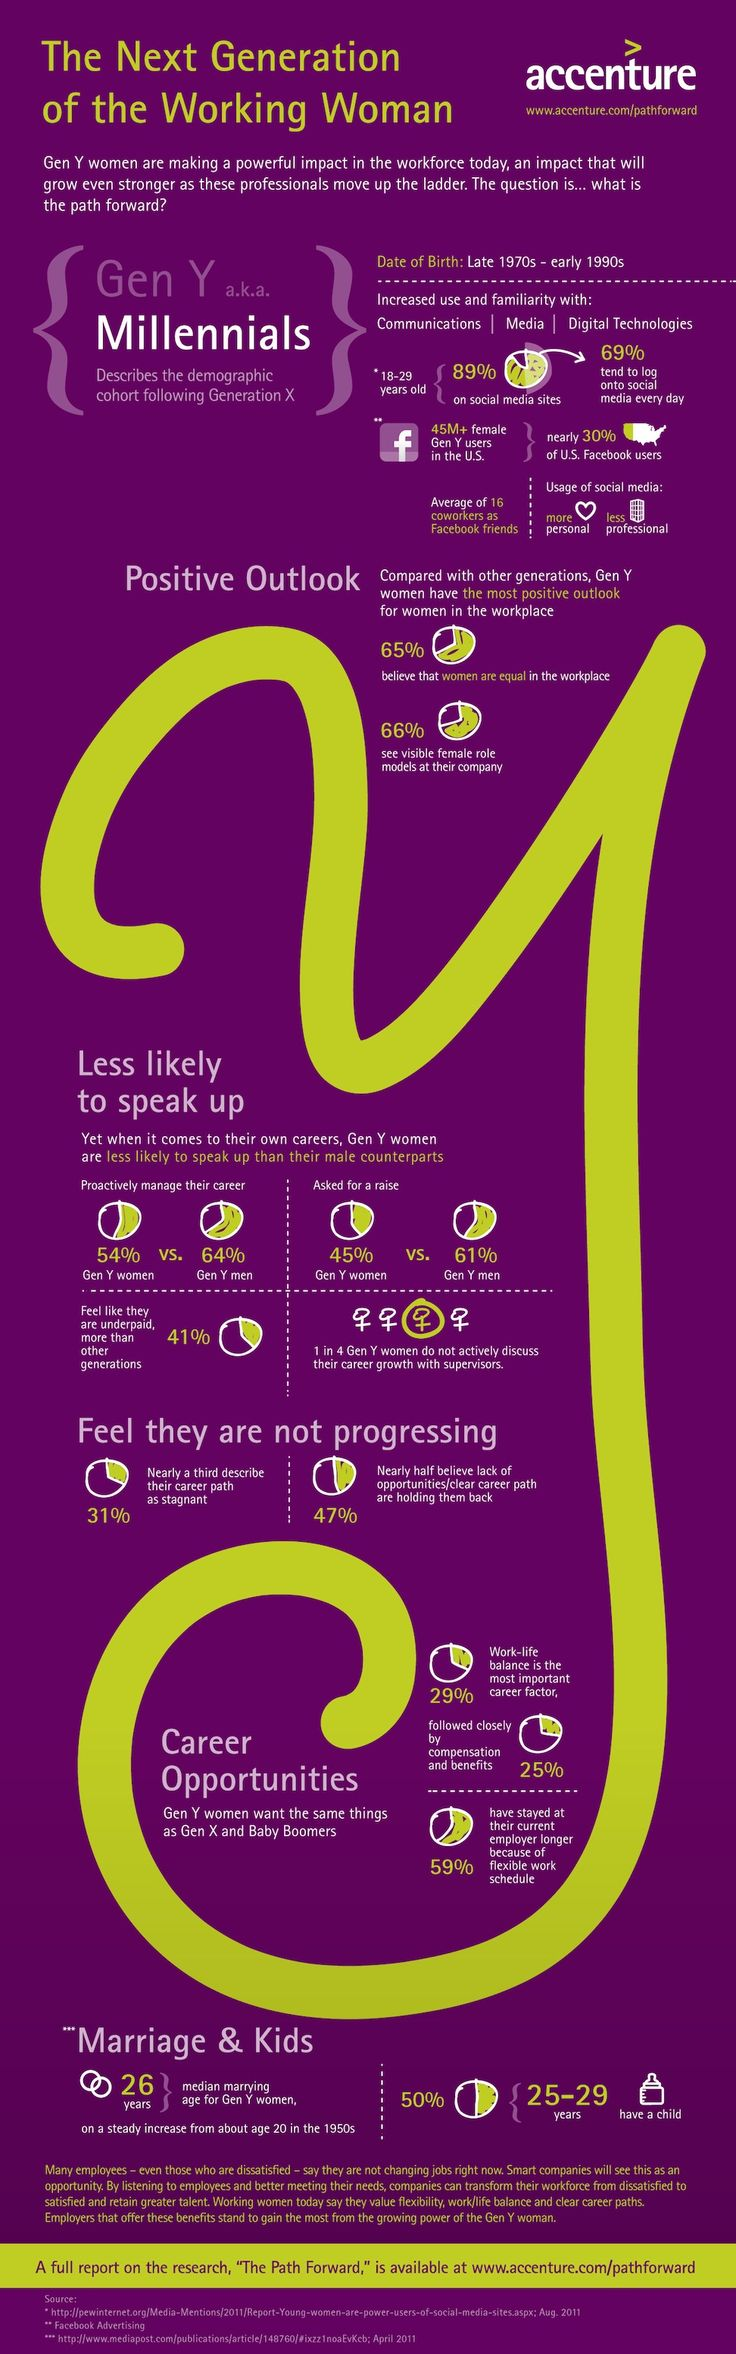 How Gen Y Women Fare in Today's Workplace. #HR #infographic